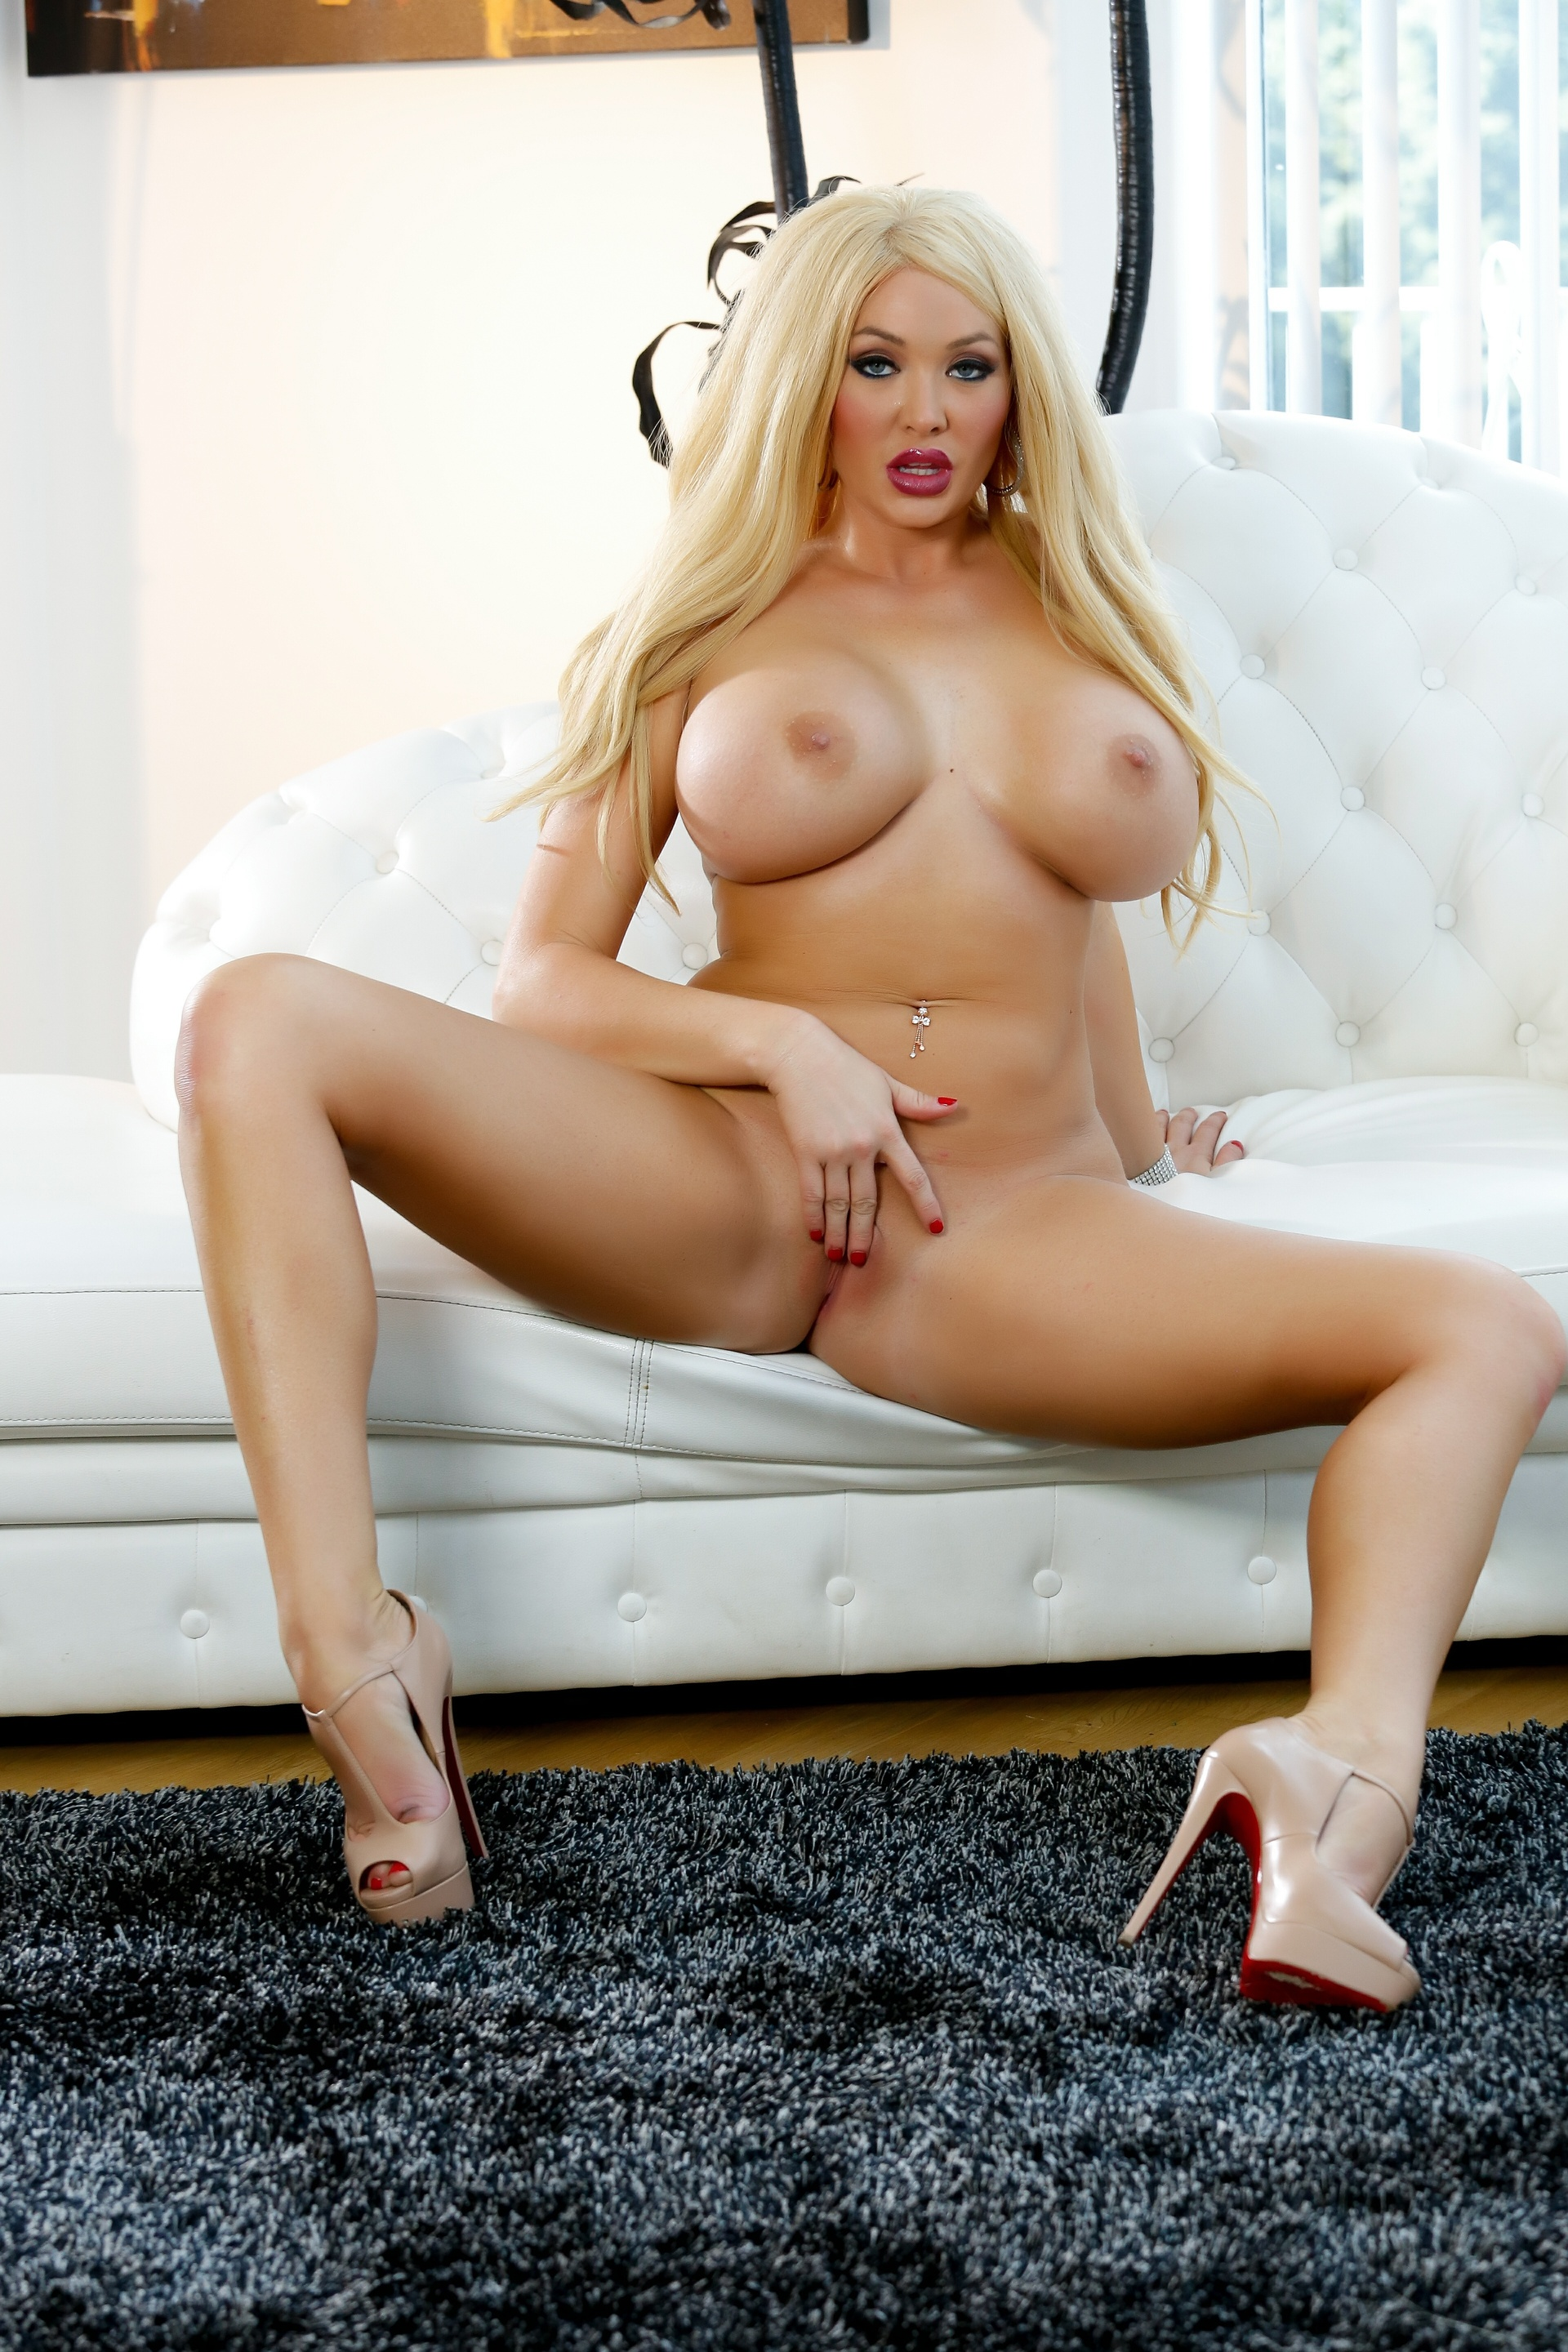 Summer Brielle - Summer In Black Spreading For You 118541